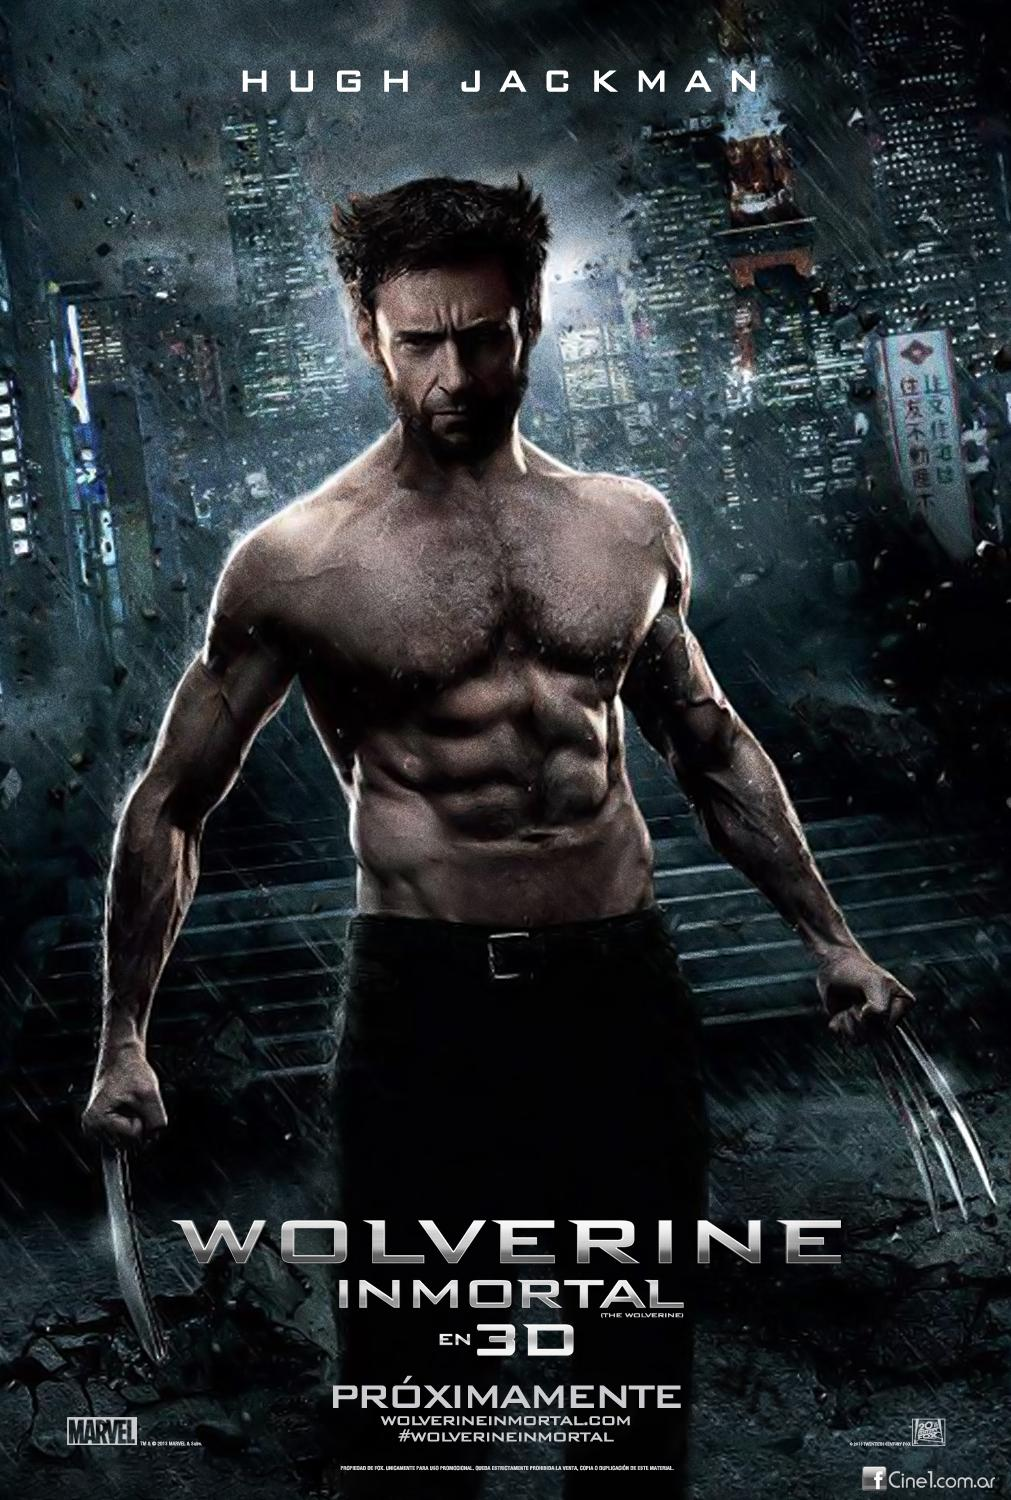 Wolverine / The Wolverine (2013)(CZ)[1080pHD][3D SBS] = CSFD 64%